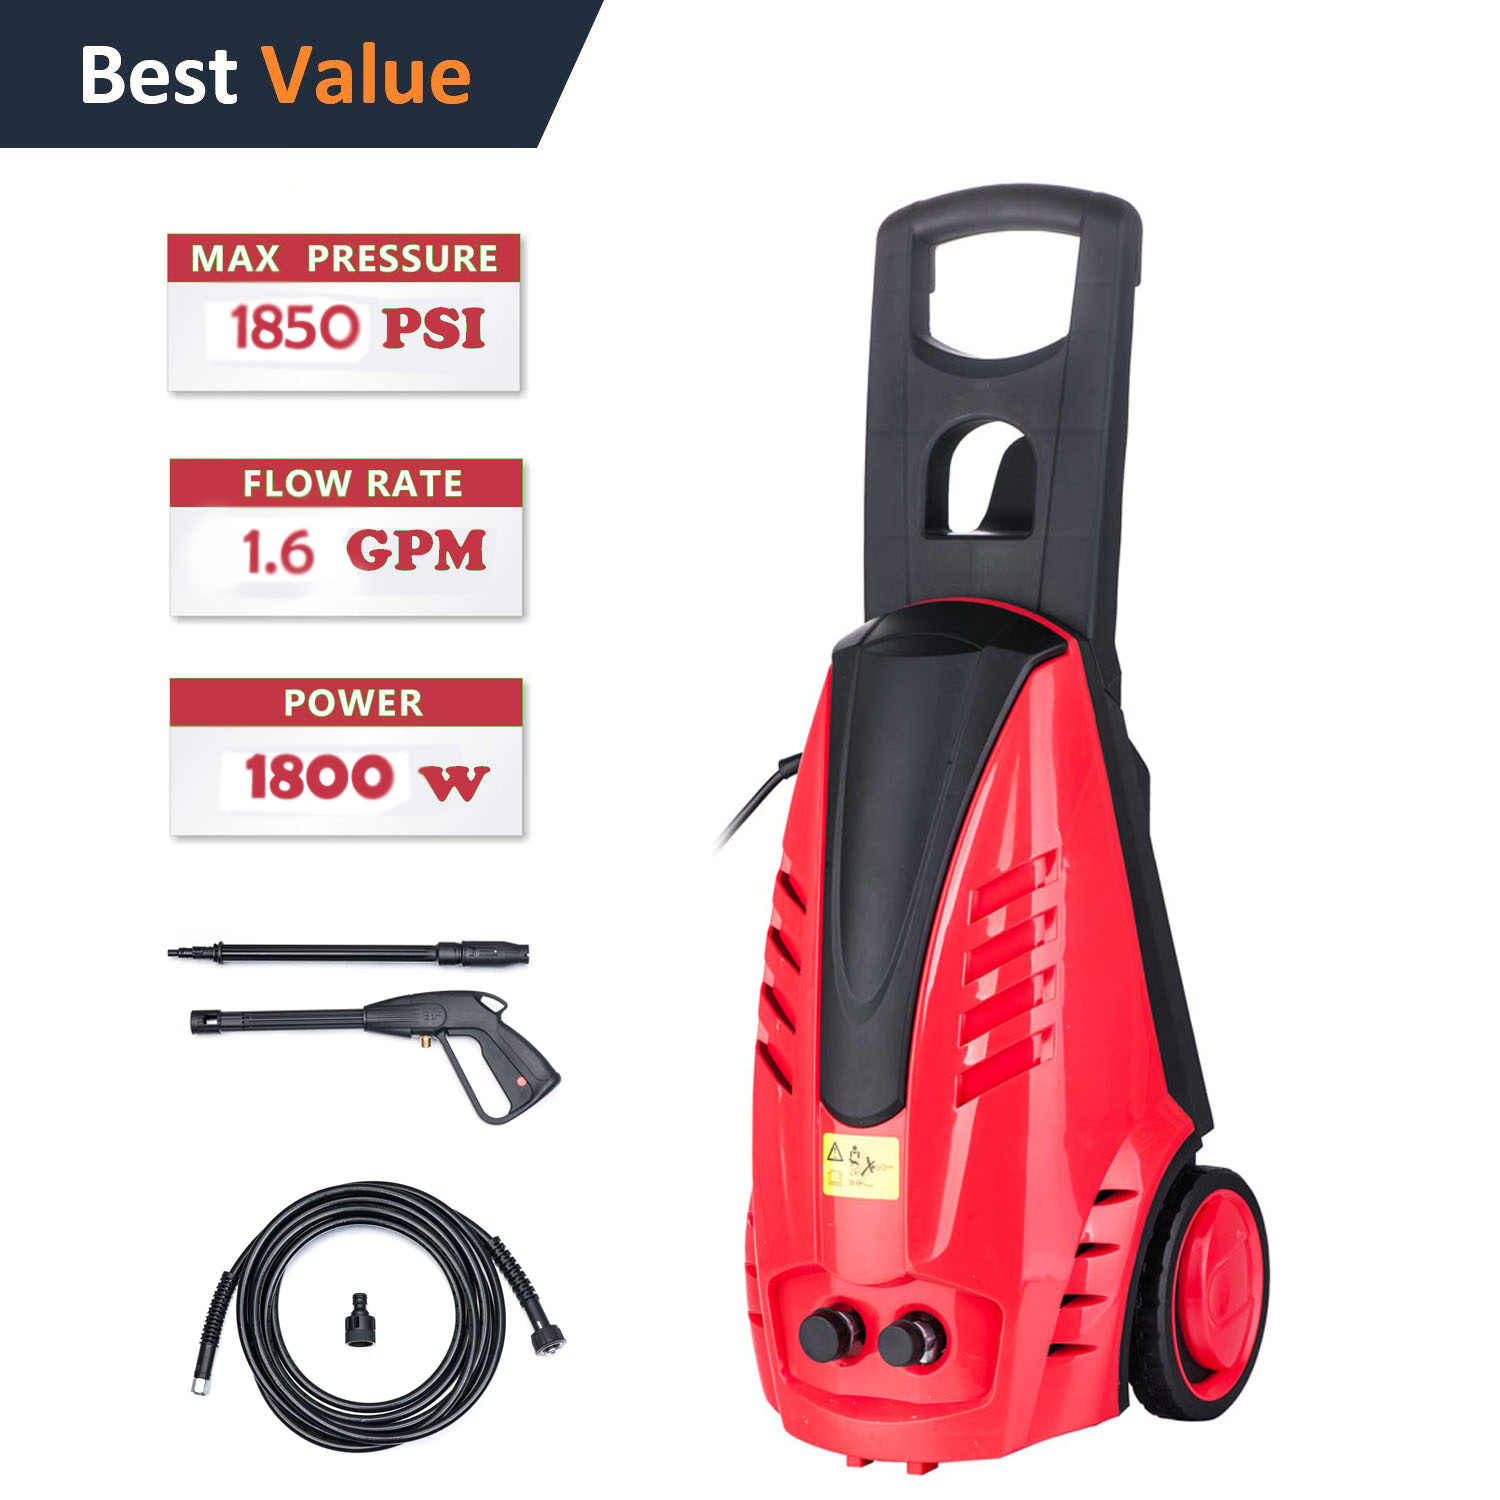 Ktaxon 1800W 1850PSI Electric Dual Sprayer High Pressure Cleaning Machine, Portable Wash Tool, Home Improvement Garage Cleaning Tasks Perfect Tool, for Car Deck Siding Sidewalk Driveway Path Road